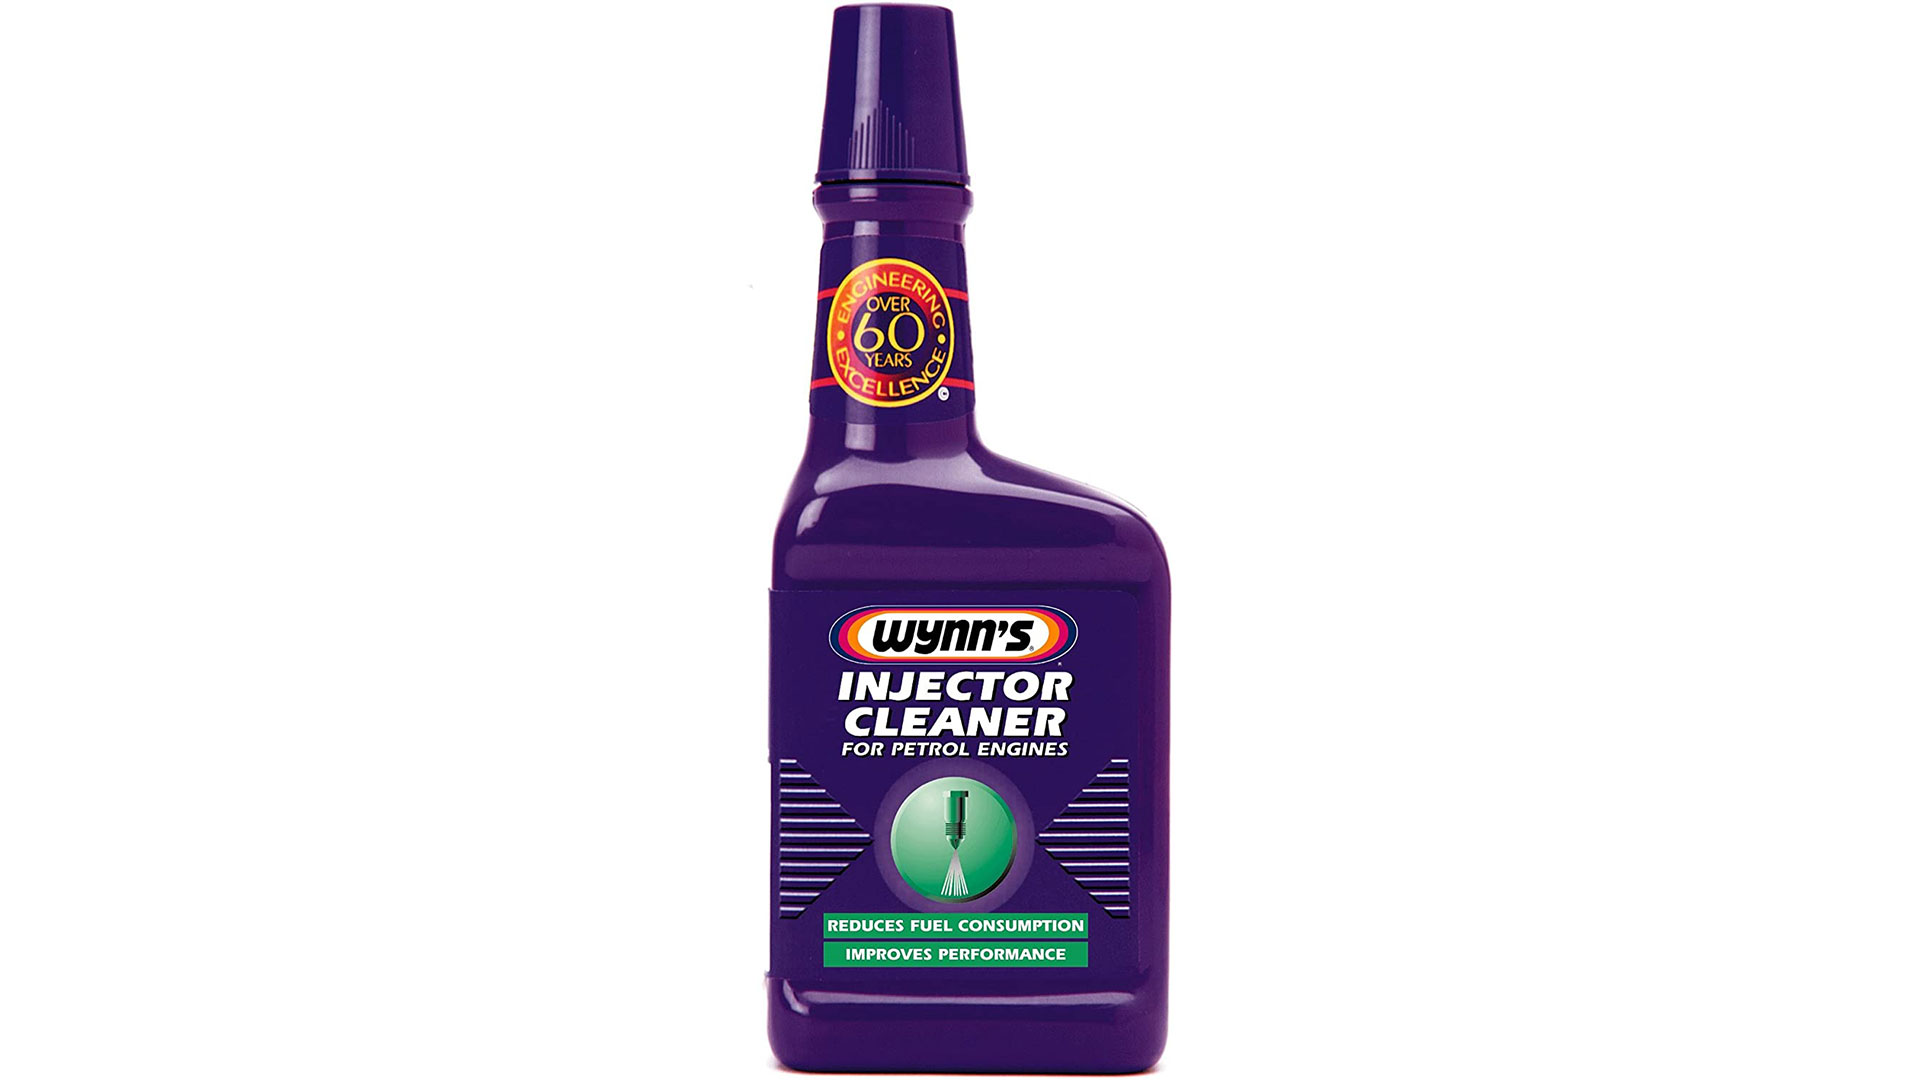 wynns petrol injector cleaner